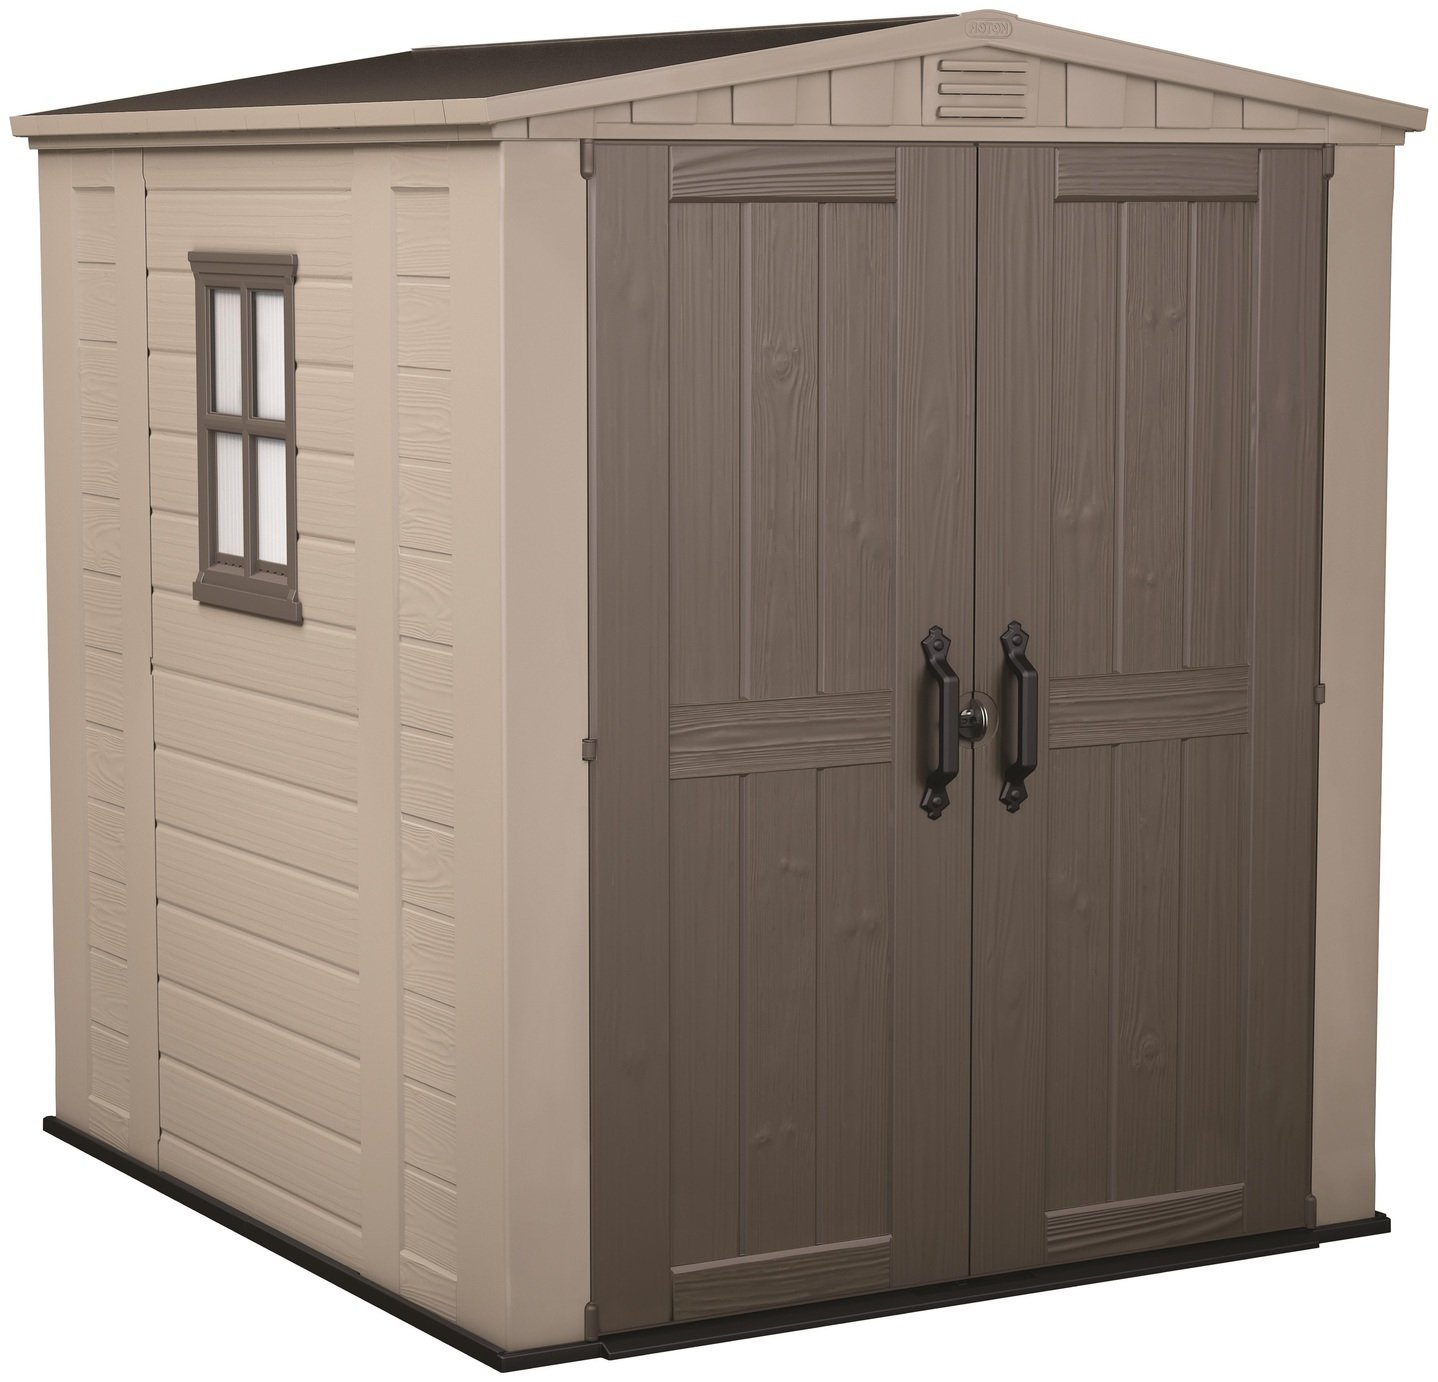 Keter Plastic Garden Shed   6 X 6ft